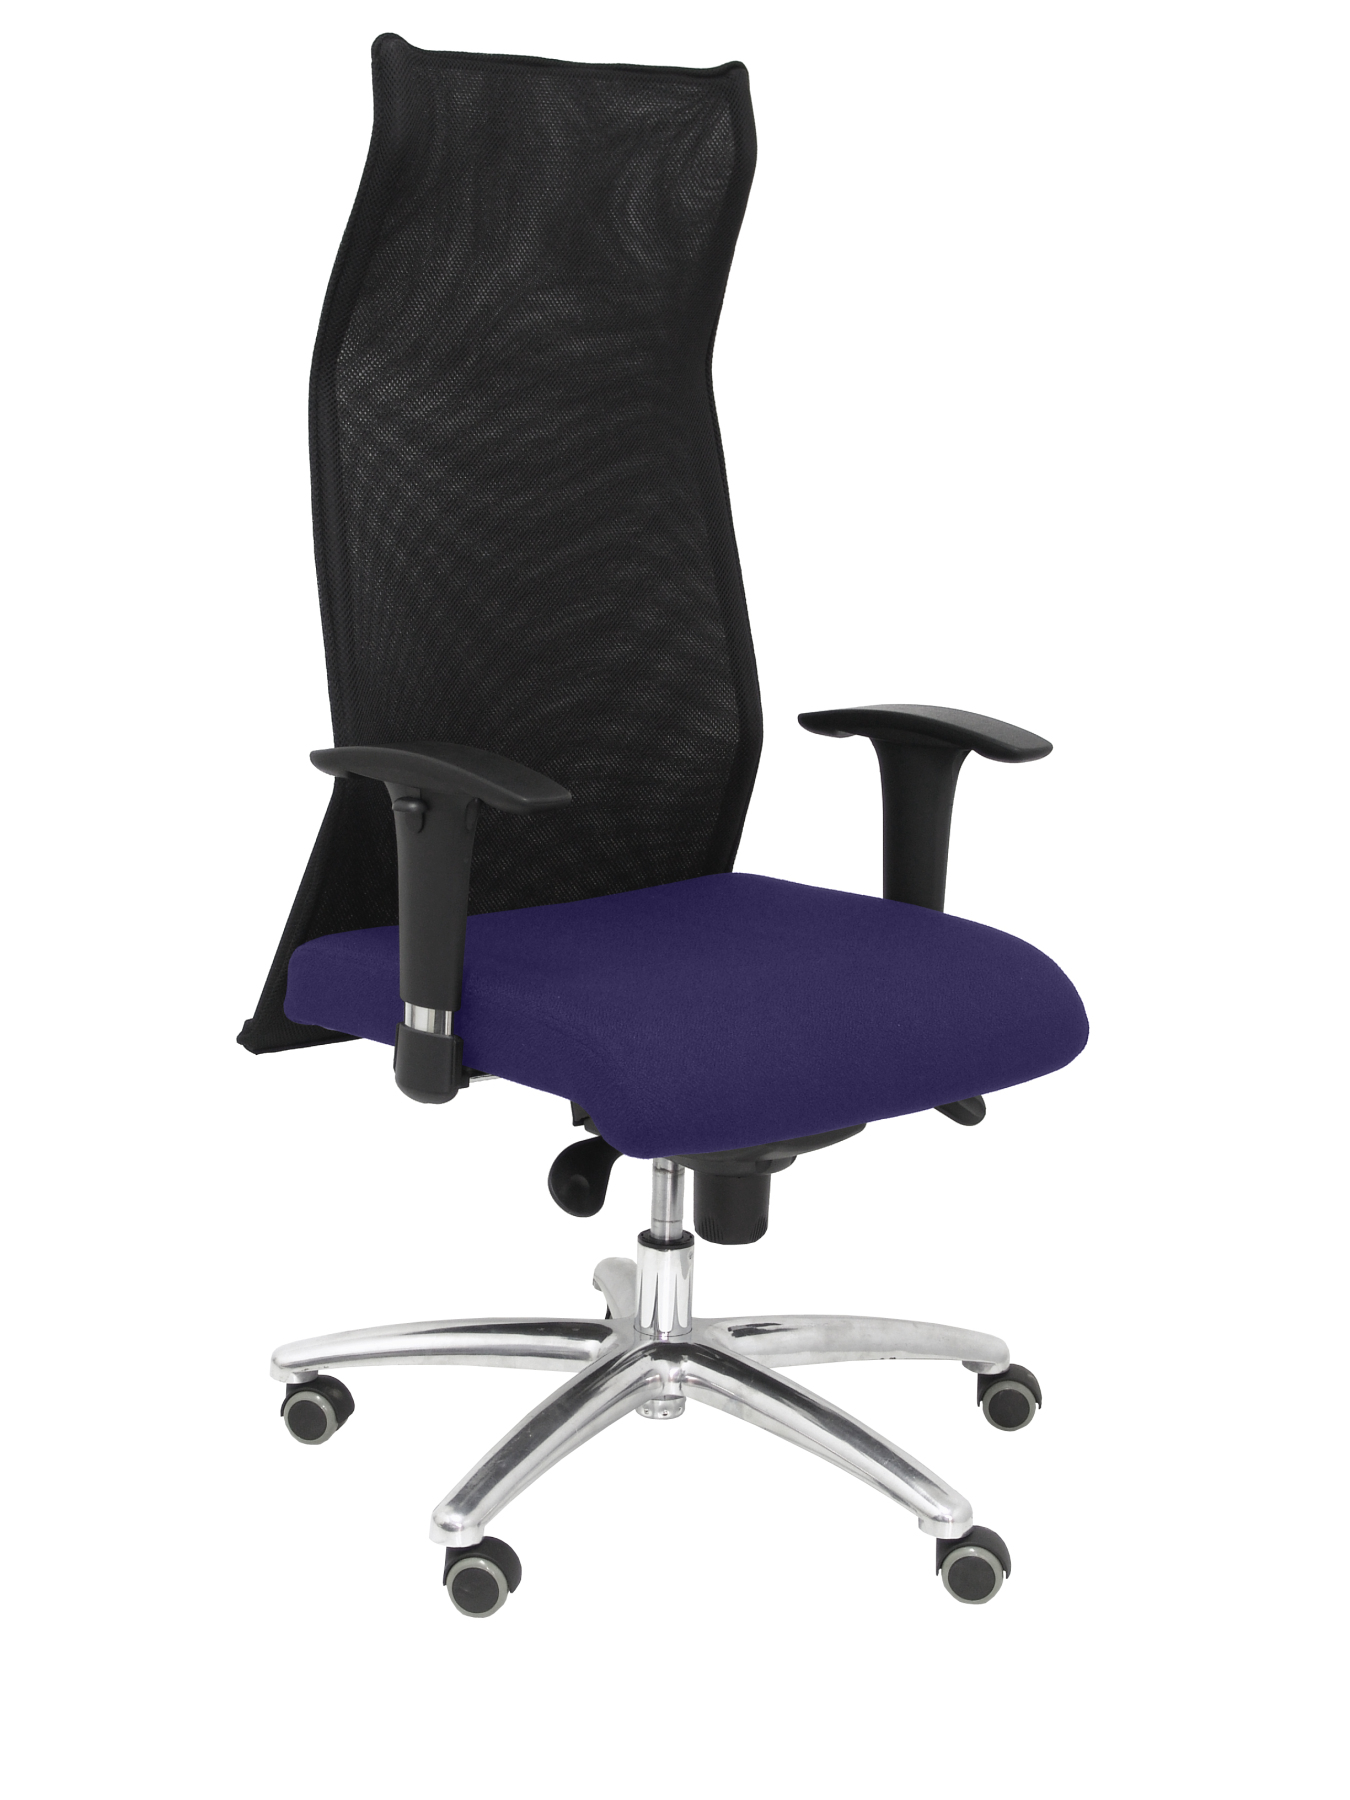 Armchair Ergonomic Steering With Sincro House Mechanism And Dimmable In High Altitude Respaldo De Breathable Mesh And Seat T